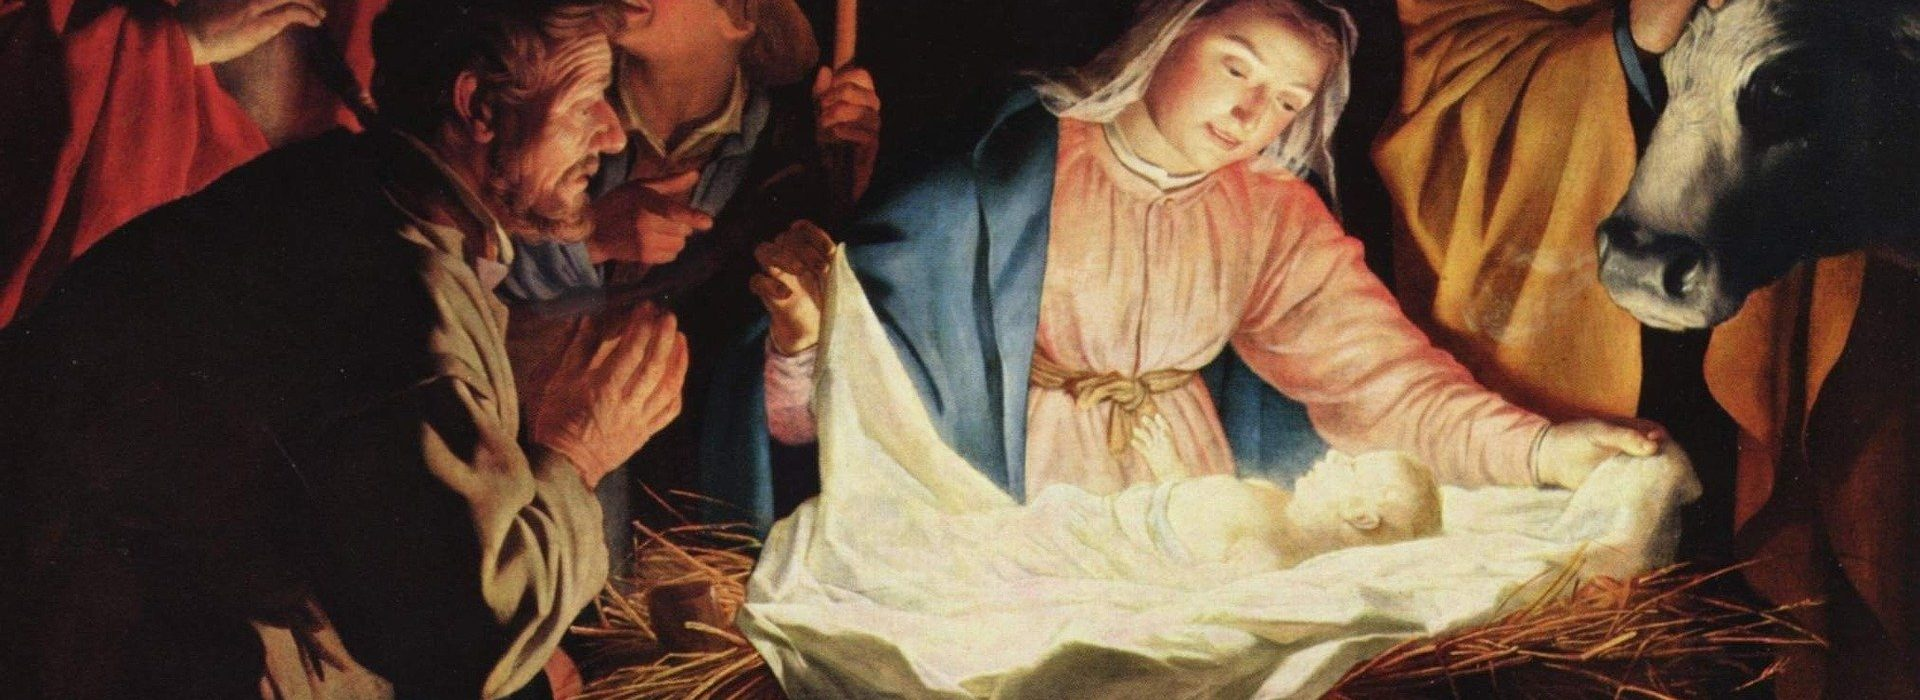 Behold, a virgin shall be with child, and shall bring forth a son, and they shall call his name Emmanuel, which being interpreted is, God with us.